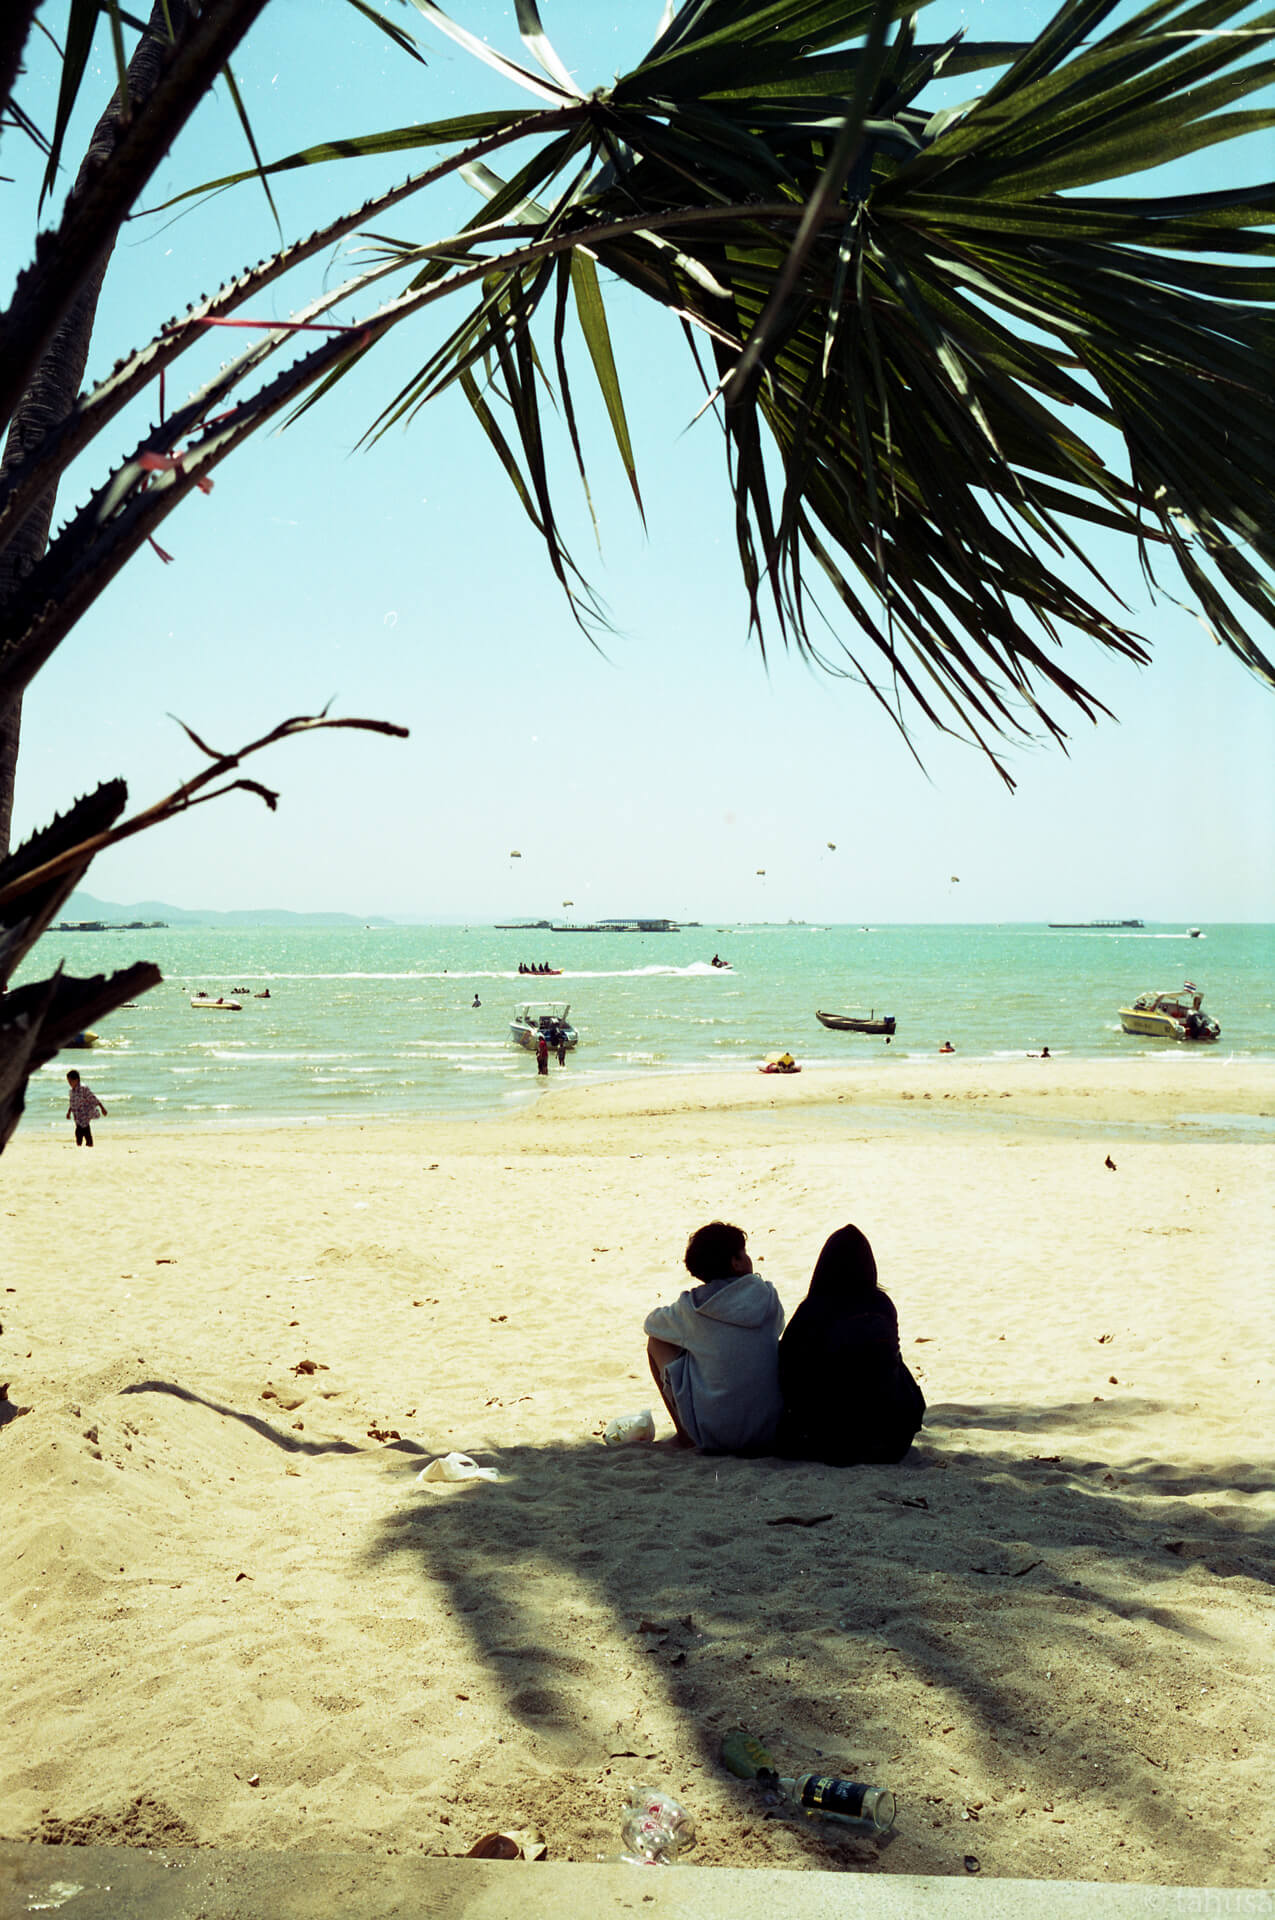 lover-sitting-under-the-shade-of-tree-on-beach-Pattaya-Thailand-using-film-leica-m2-summicron-35mm-f2-v1-8elements-hk-cinestill-Cine-movie-film-analog-c41-unique-color-film-review-street-streetsnap-streetphotography-iso50-50D